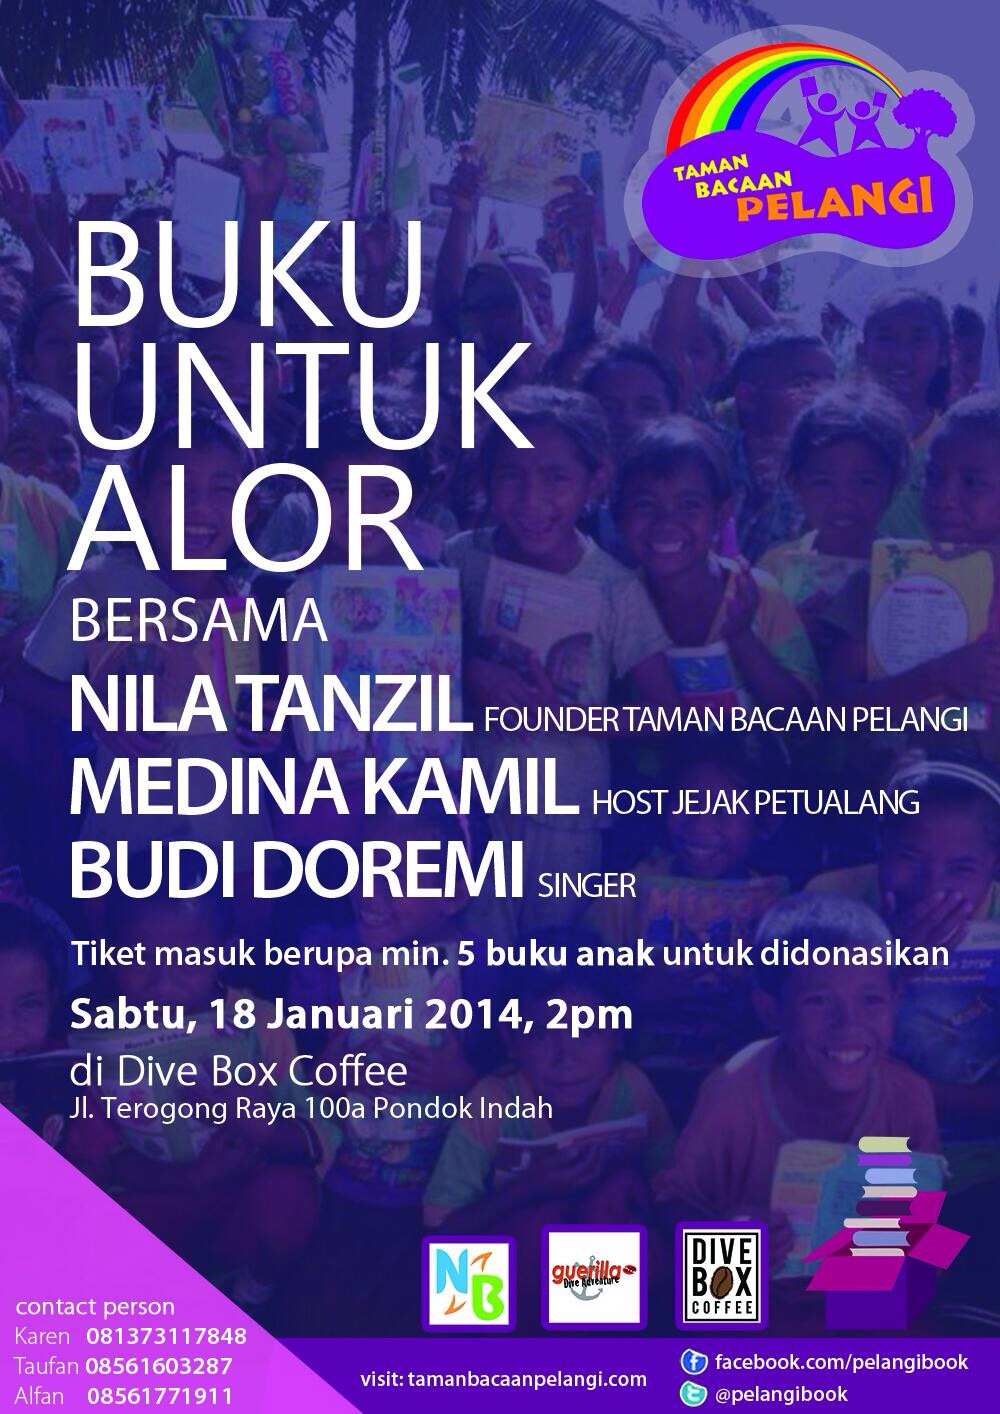 Book drive event #BukuUntukAlor